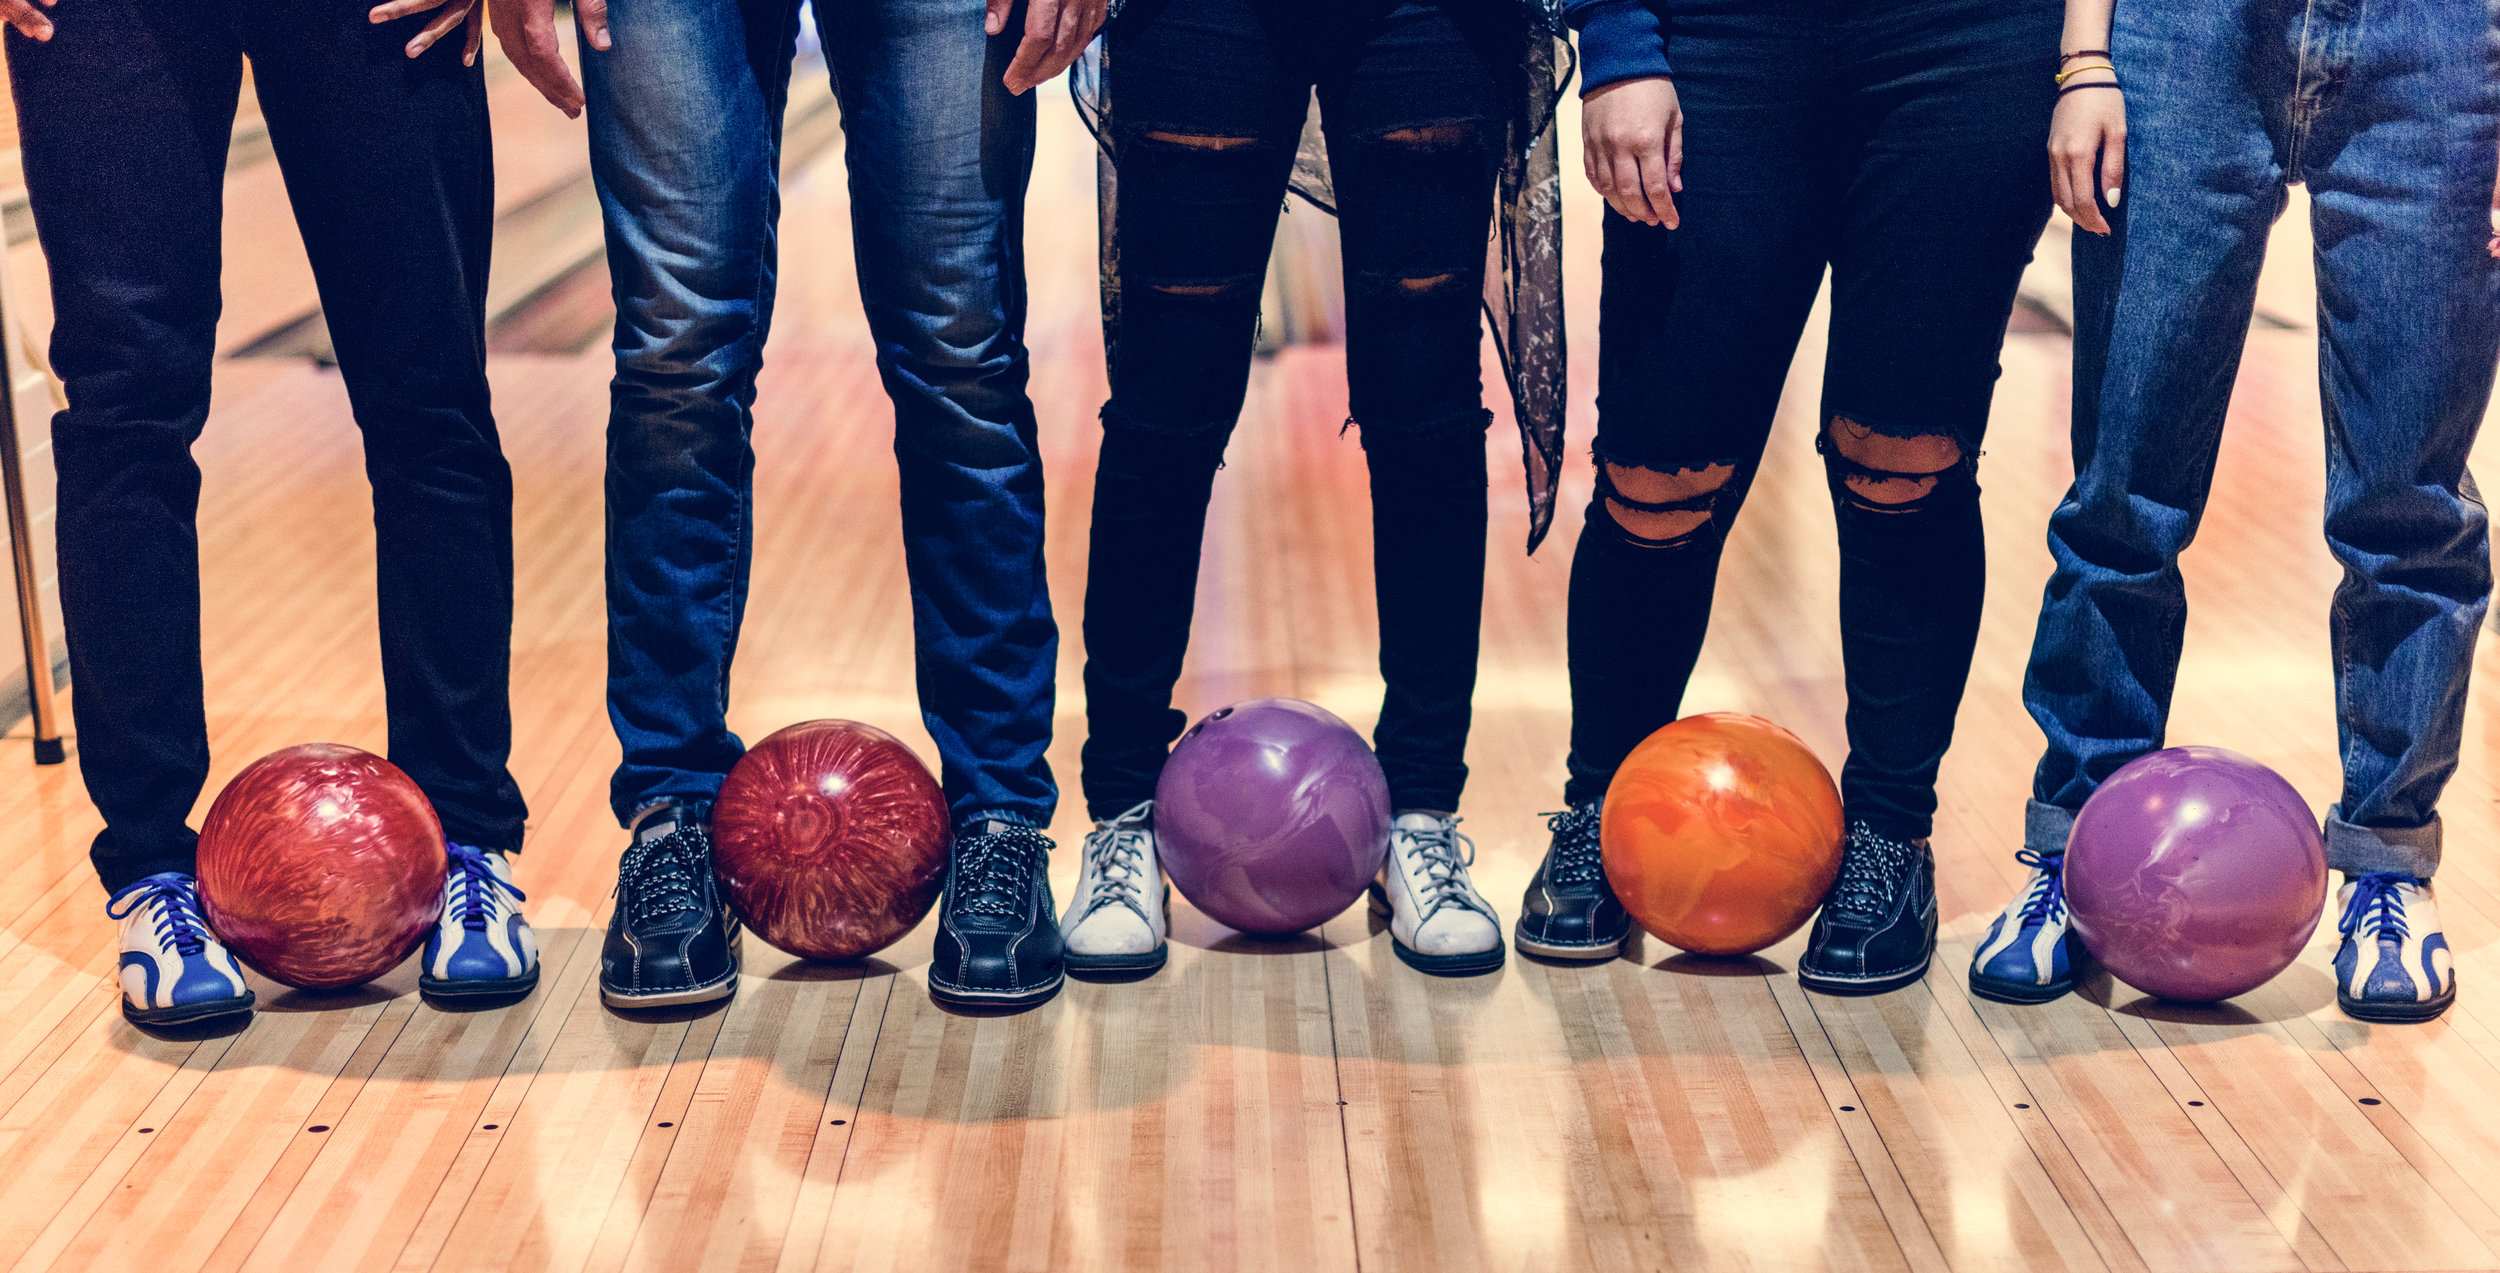 bigstock-Time-with-friends-at-a-bowling-243925540.jpg